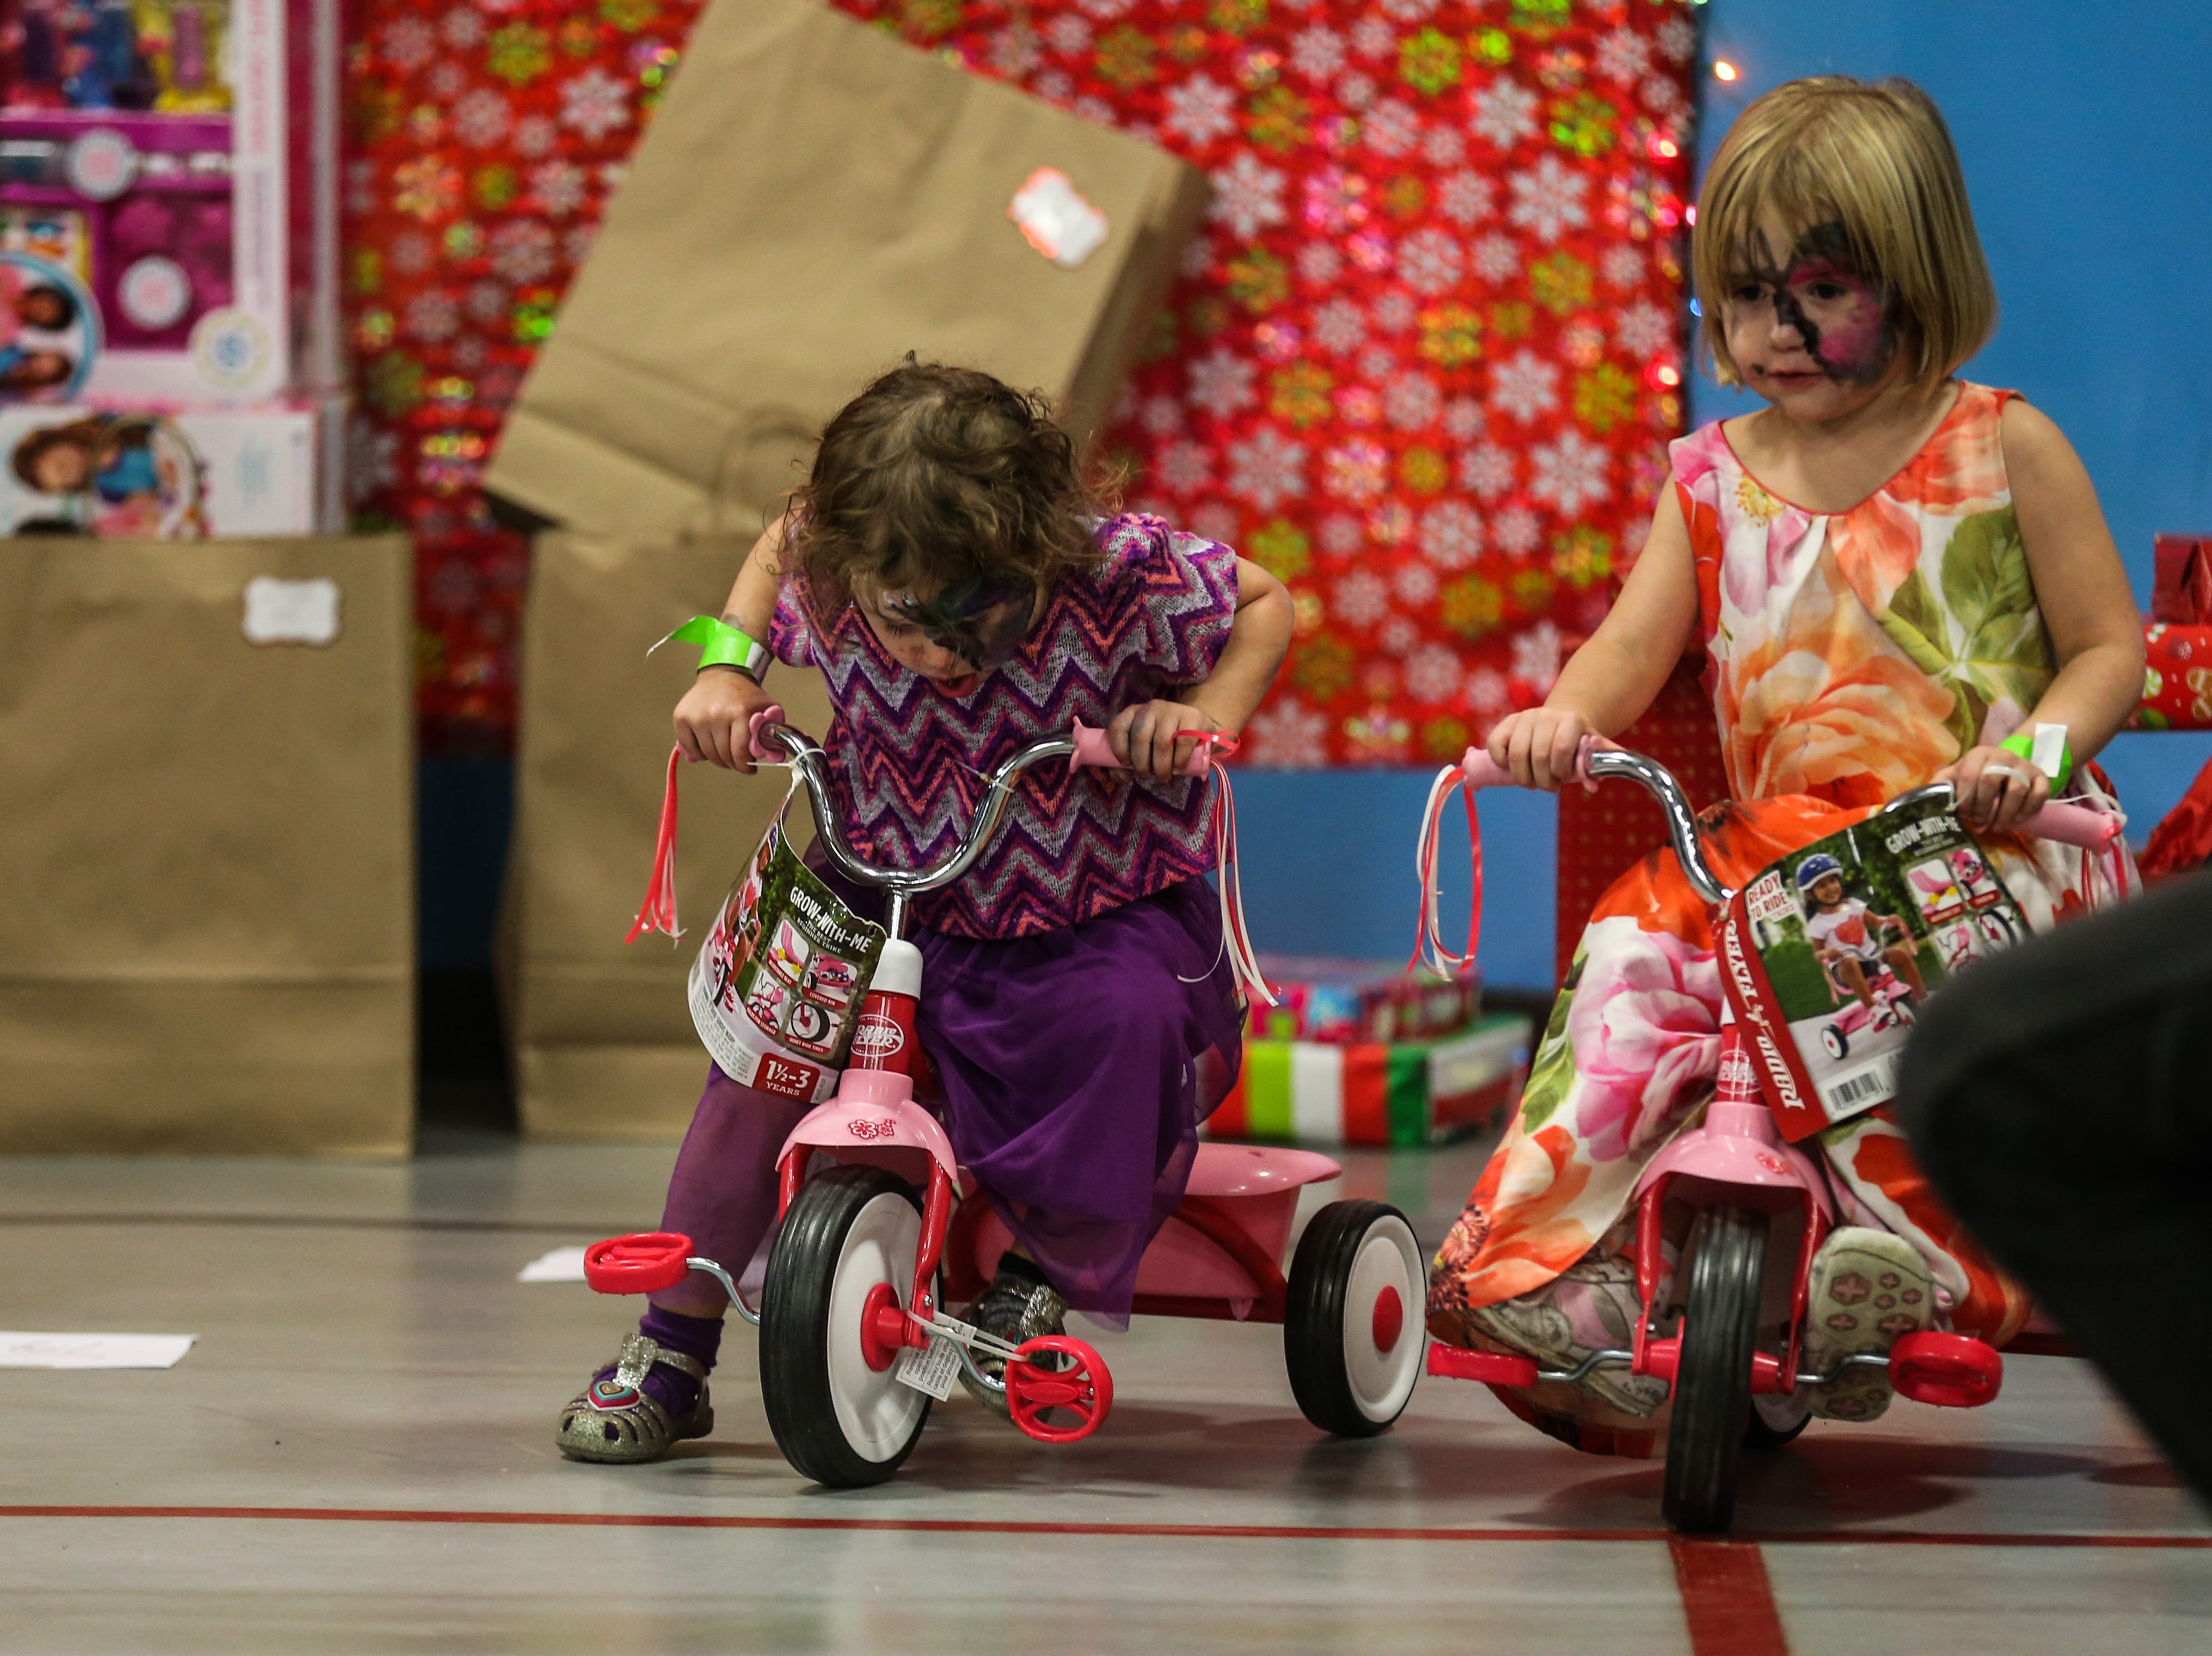 Happie Blazek, 2, and Prairie Blazek, 4, try out tricycles from the gifts  during the In the Spirit of Christmas party Saturday, Dec. 15, 2018, at the Southside Recreation Center.